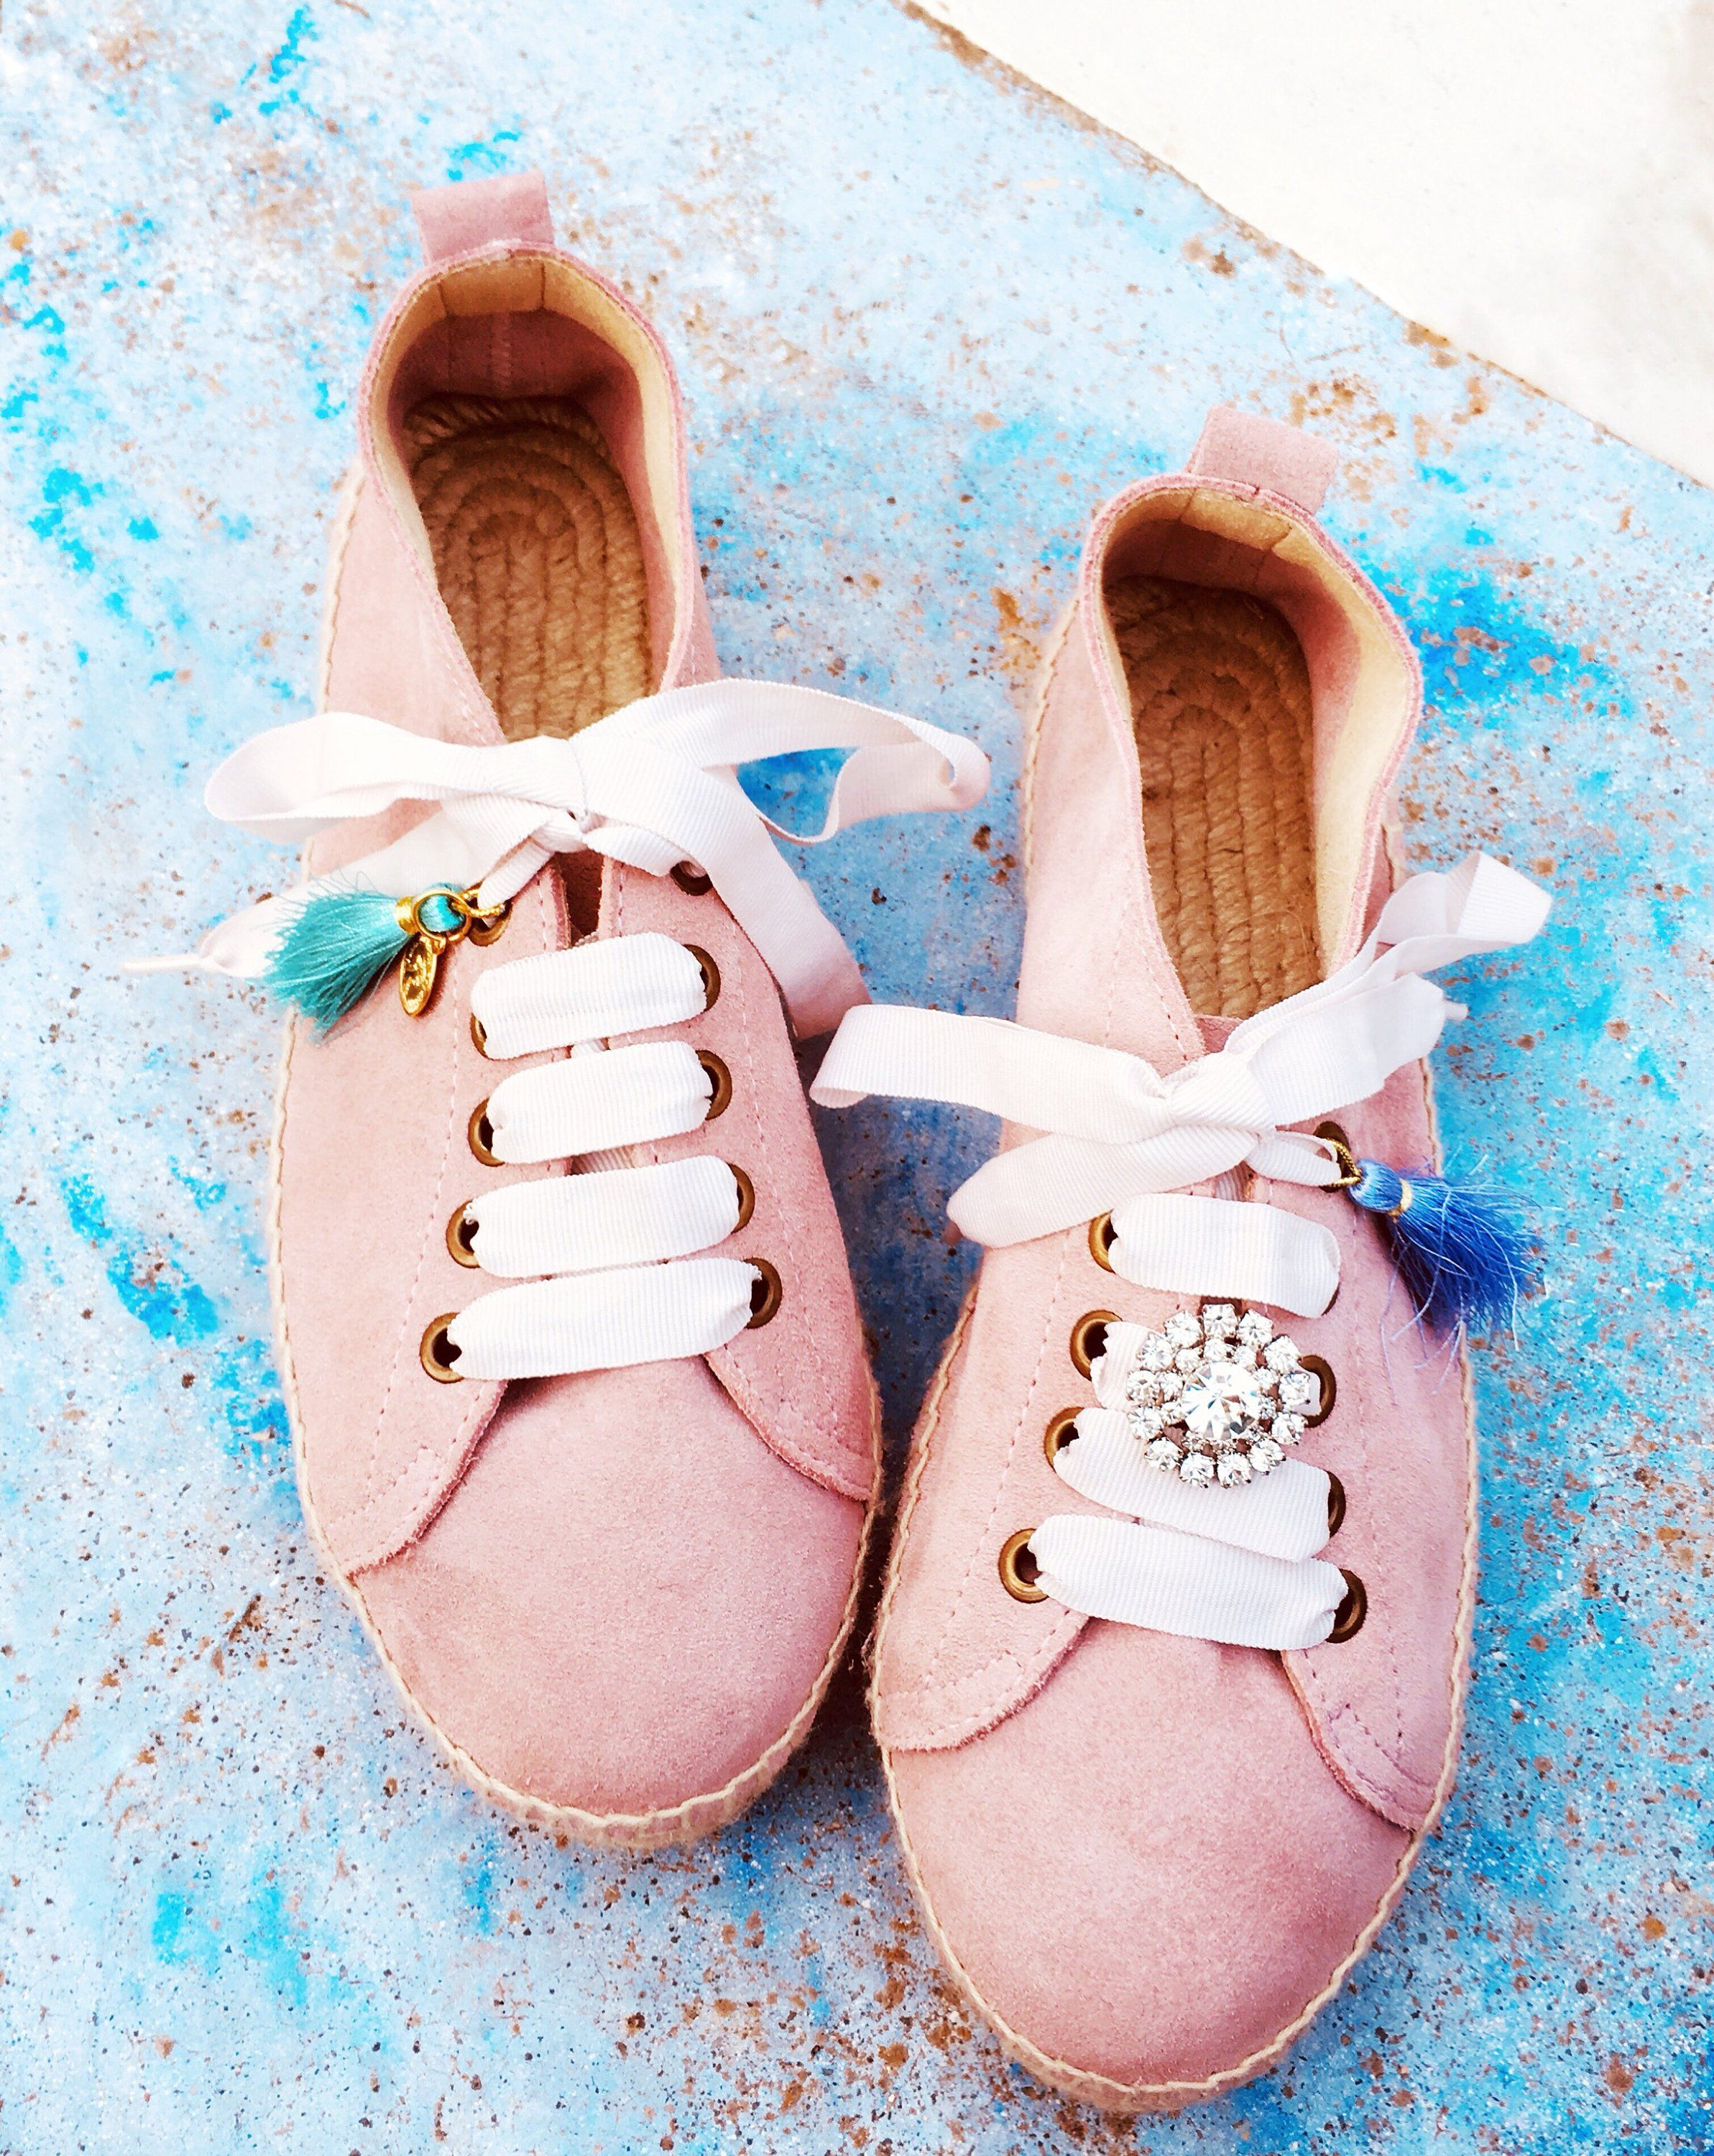 d814519c2ab UltraBoho Sneakers Espadrilles- Lace Oxford shoes, Suede Leather ...